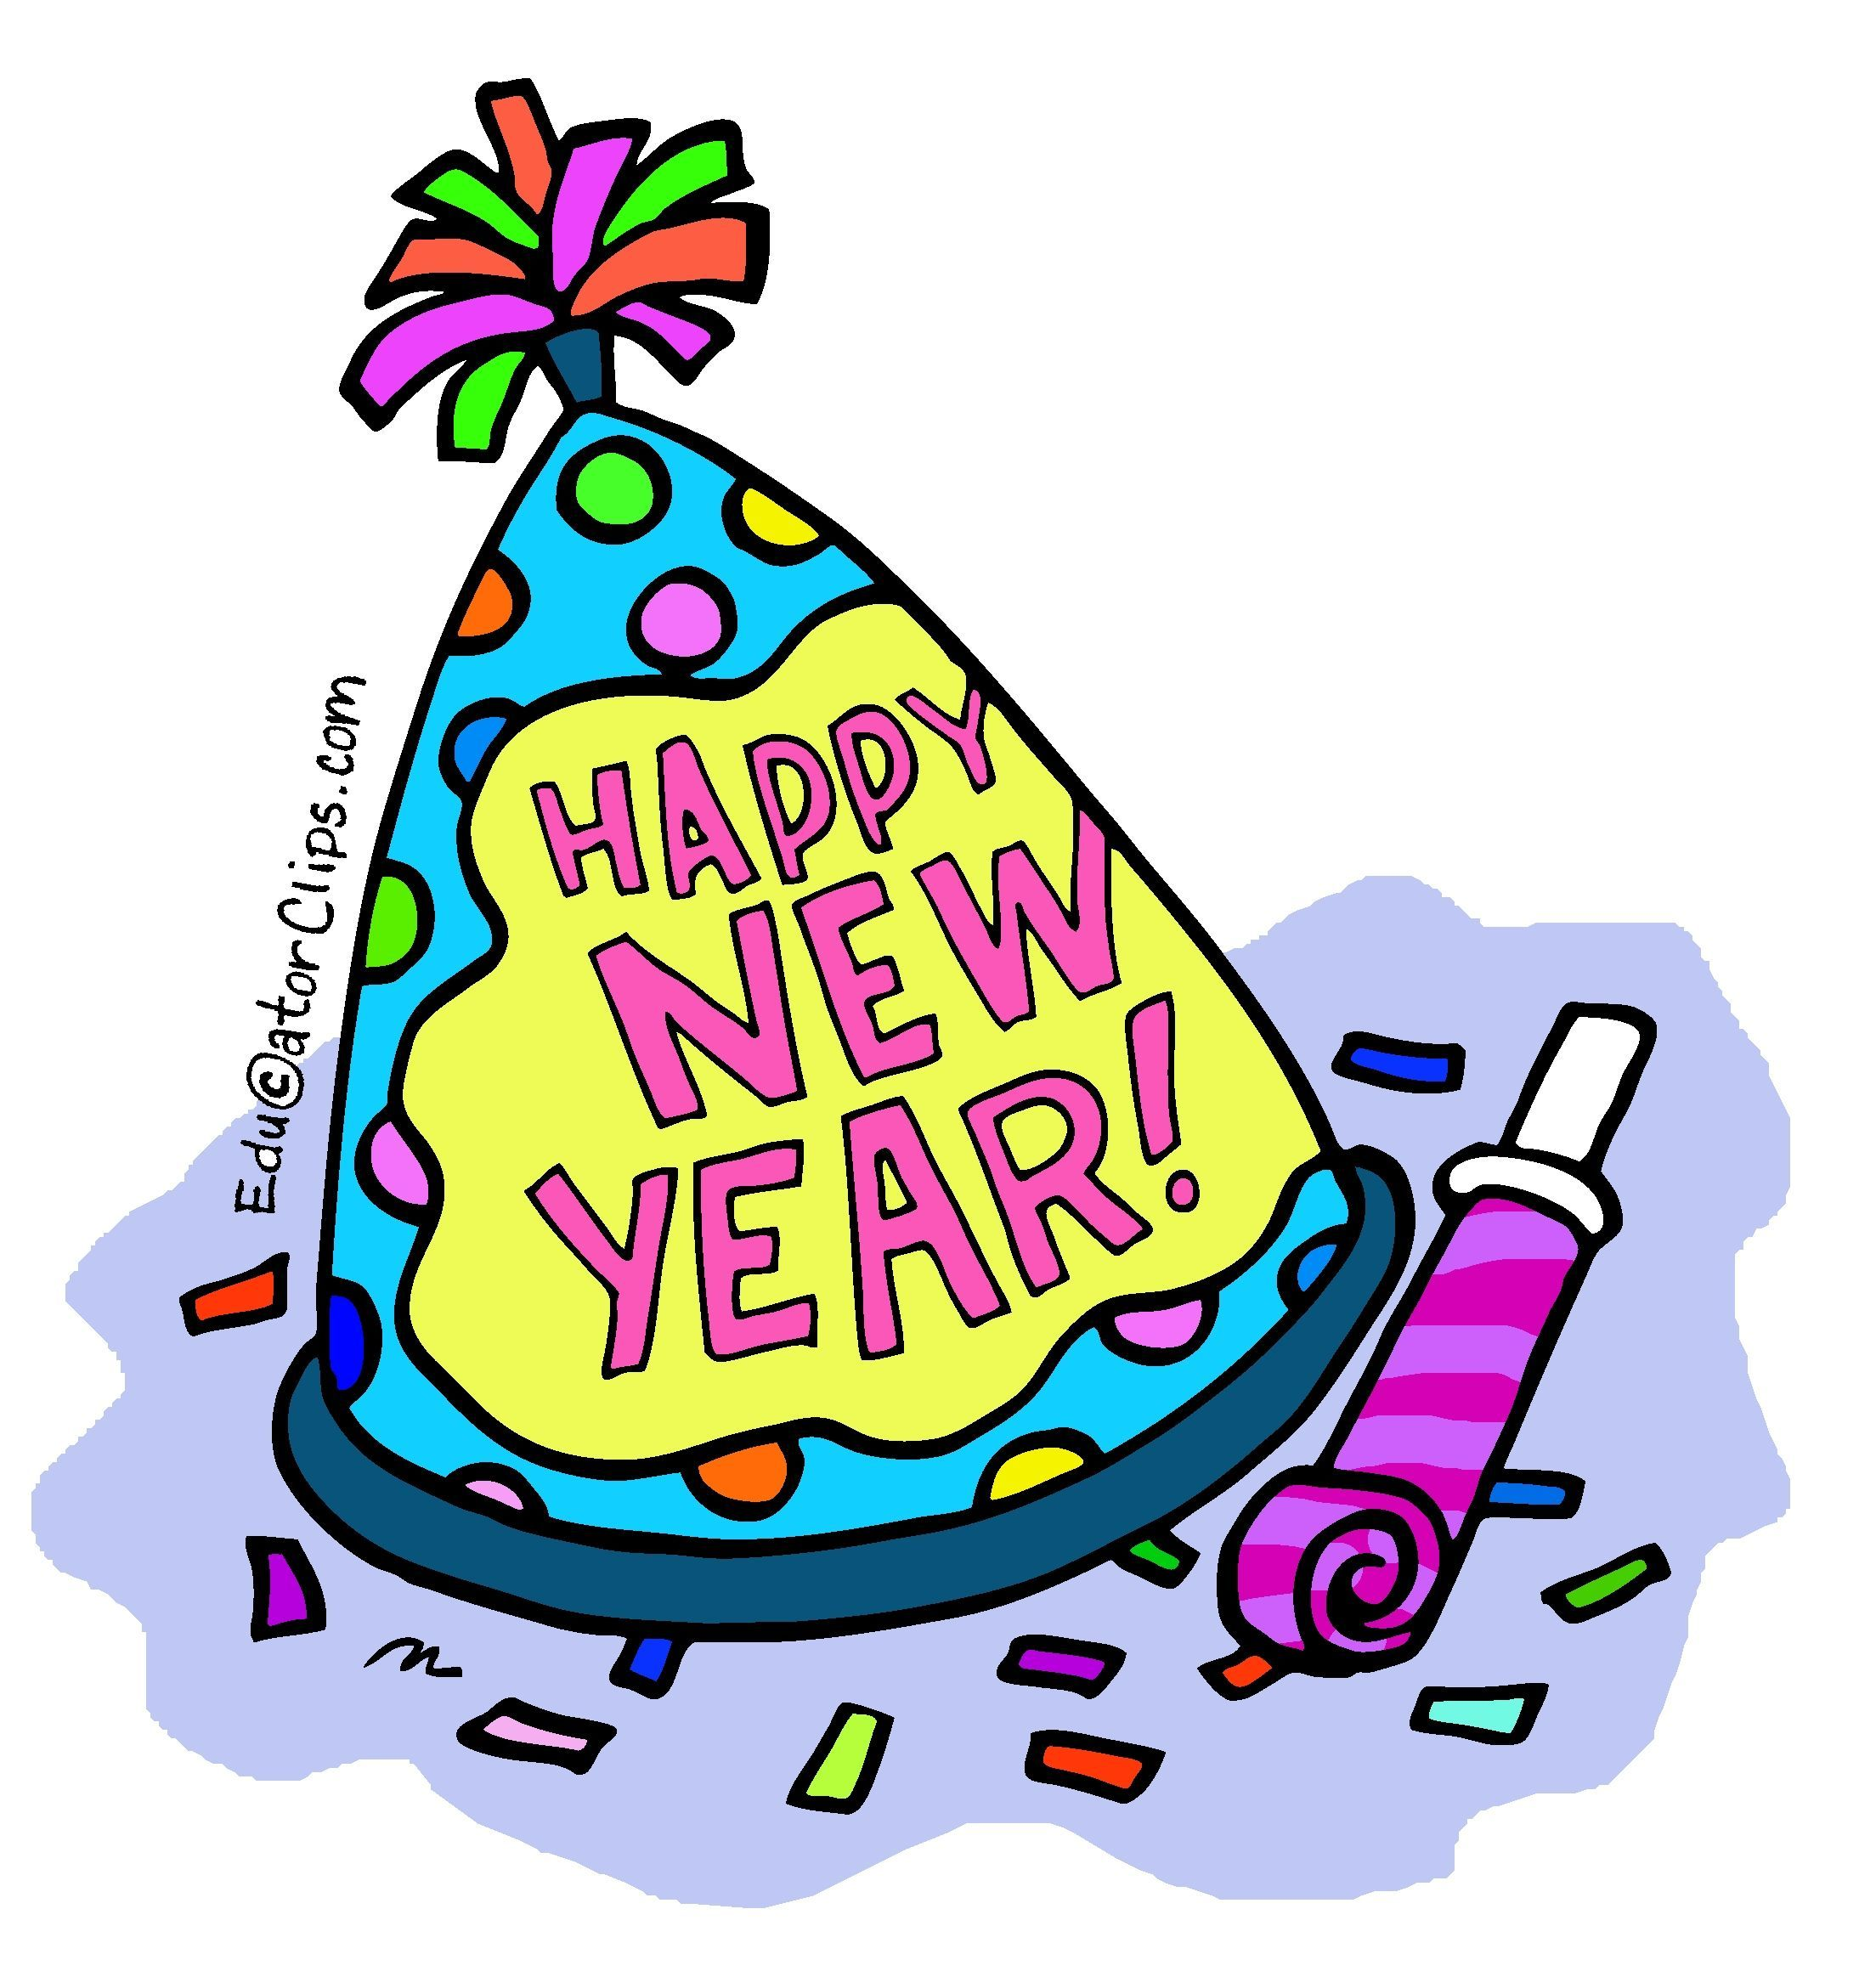 Happy New Year Hat Clip Art For Teachers And Students Happynewyear Clipart 361976888802653106 In 2020 New Years Hat Happy New Year Happy New